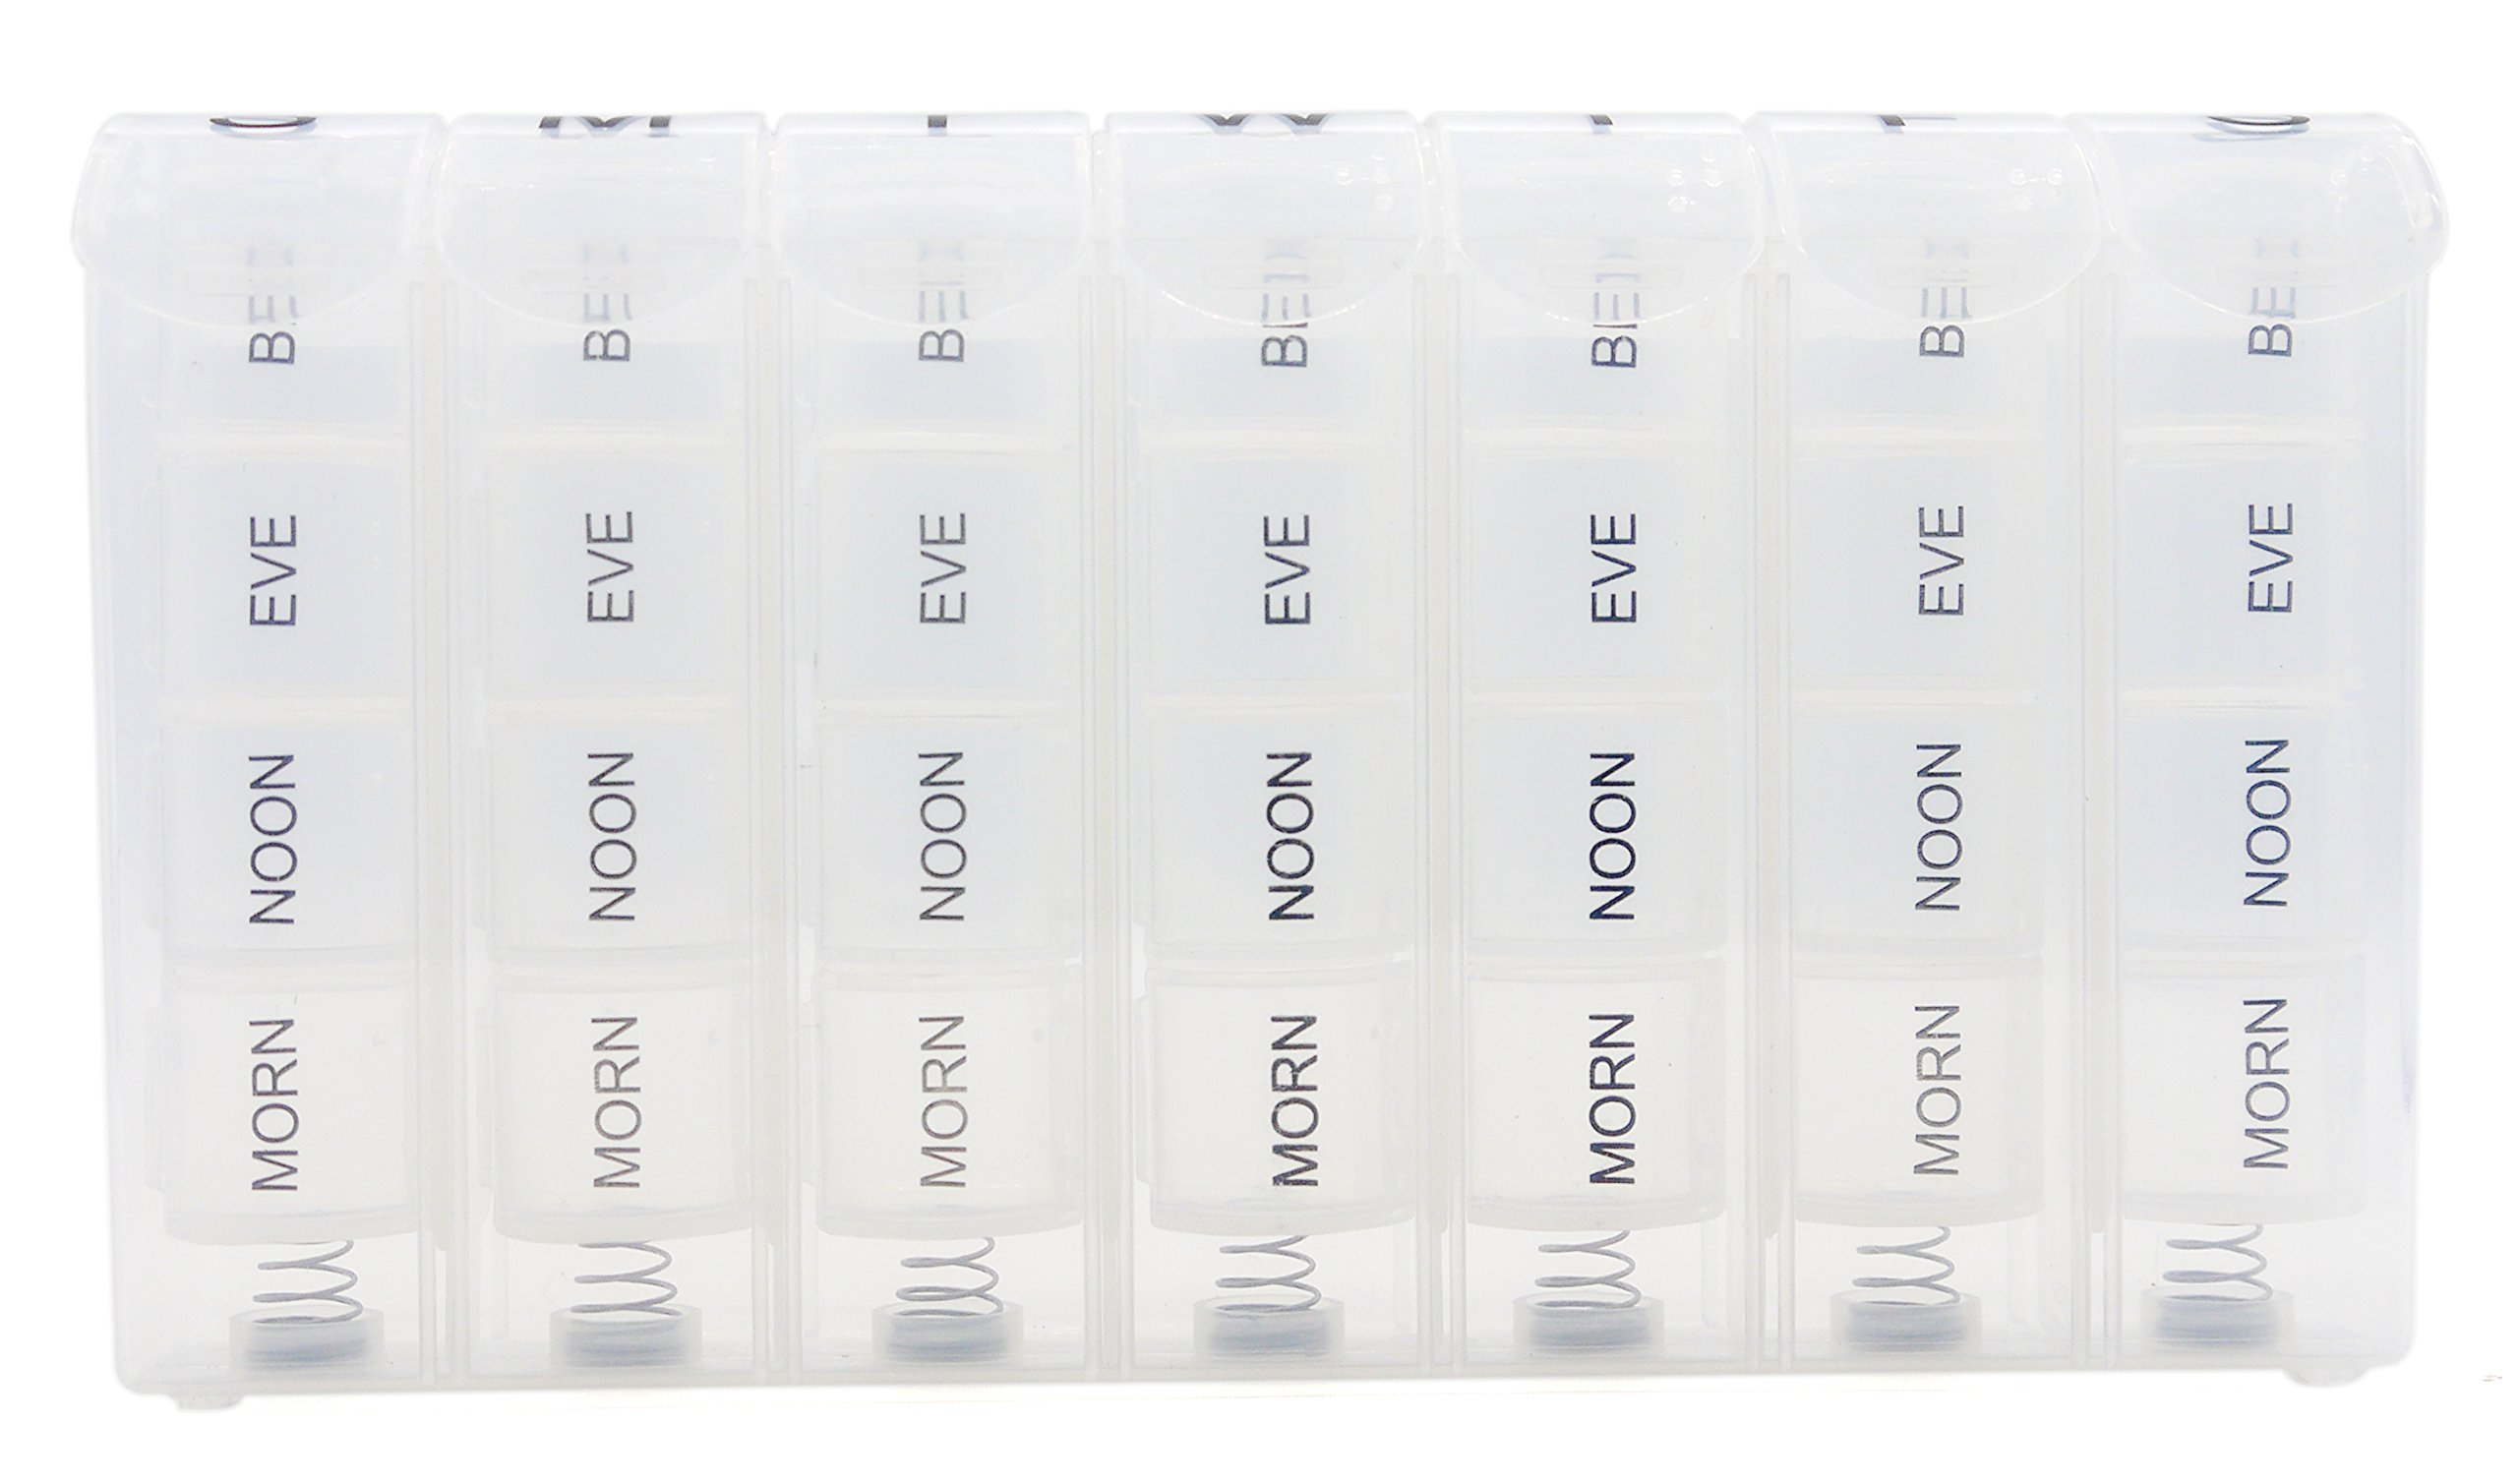 PuTwo Pill Organizer Weekly Removable and Portable Case with 28 Compartments, Clear by PuTwo